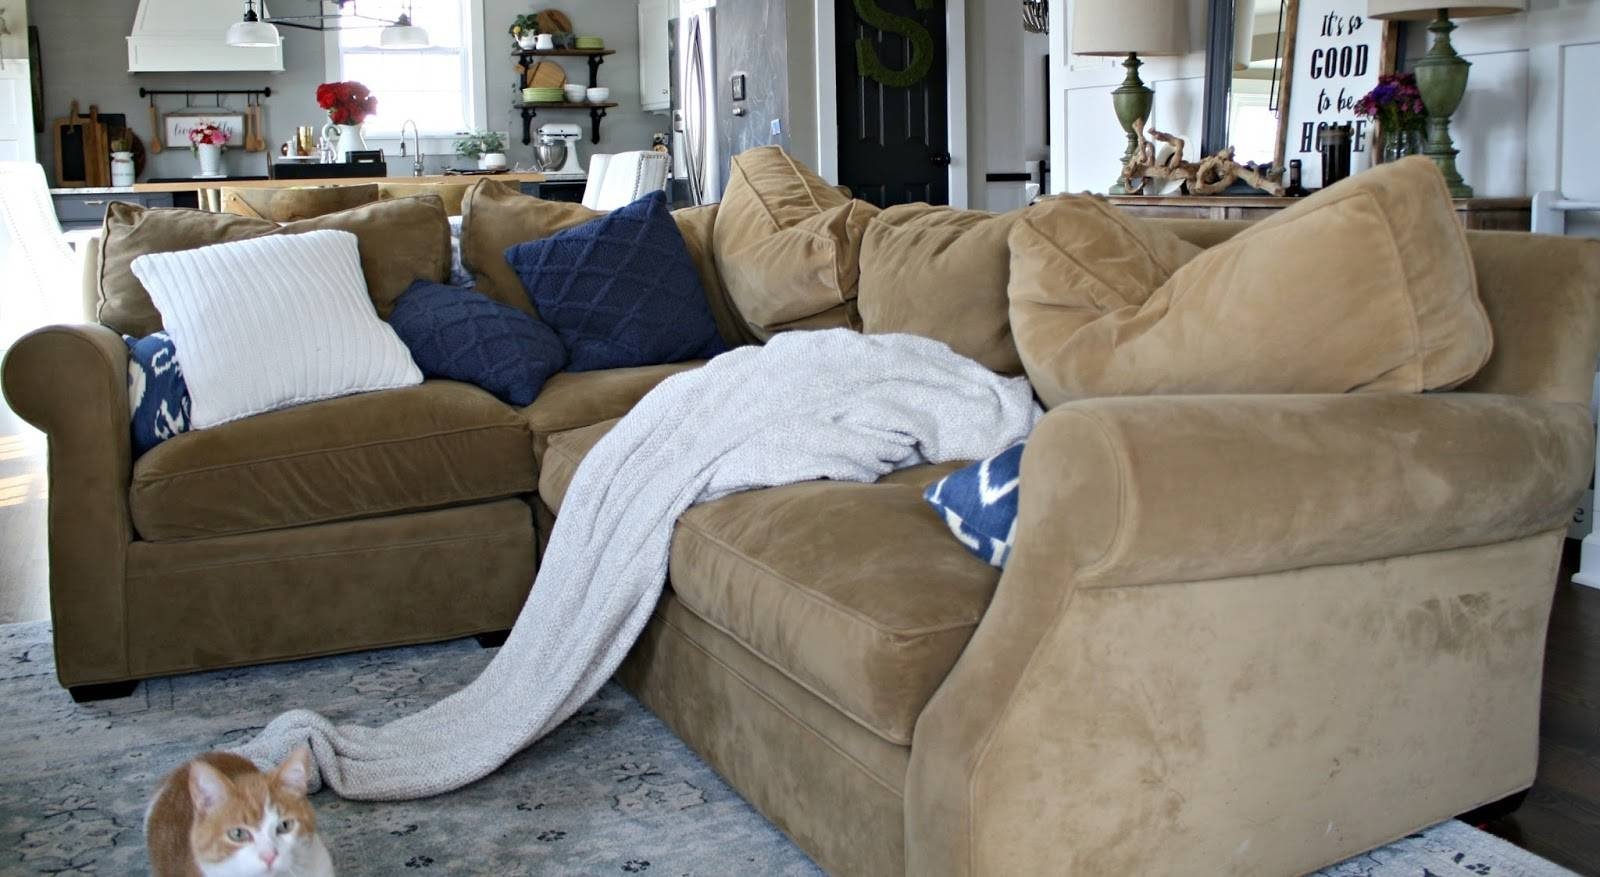 A Review Of Our Most Expensive Purchase! From Thrifty Decor Chick Within  Expensive Sectional Sofas